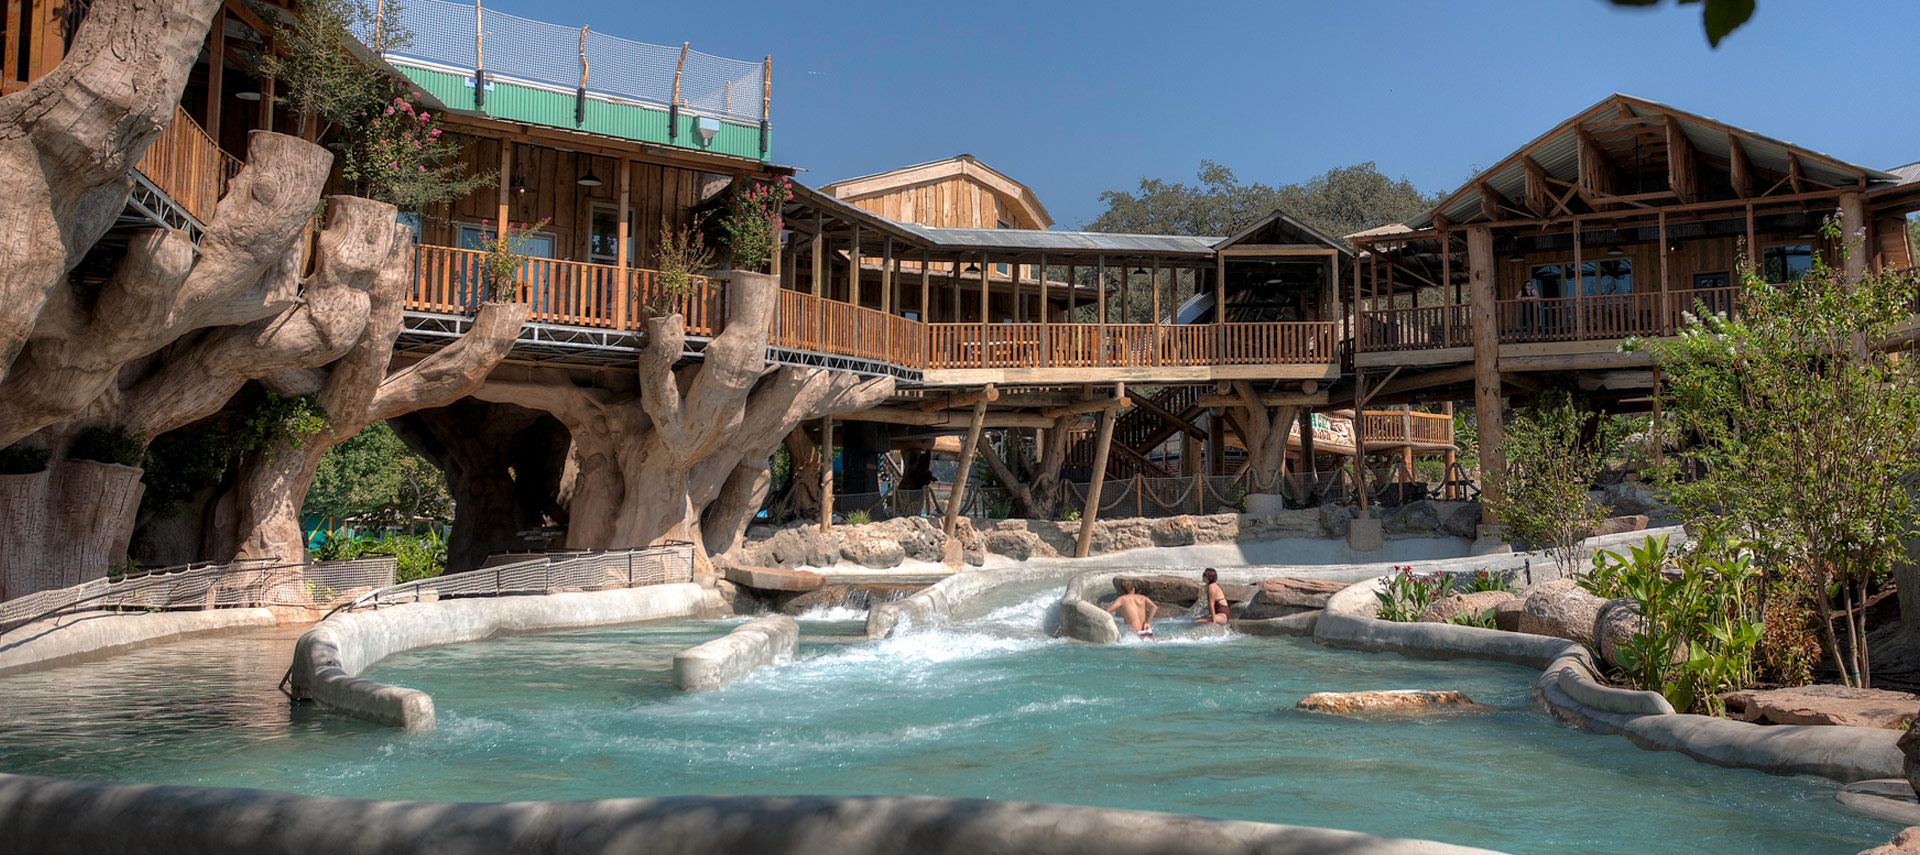 IAAPA: Waterparks Become Destination Resorts